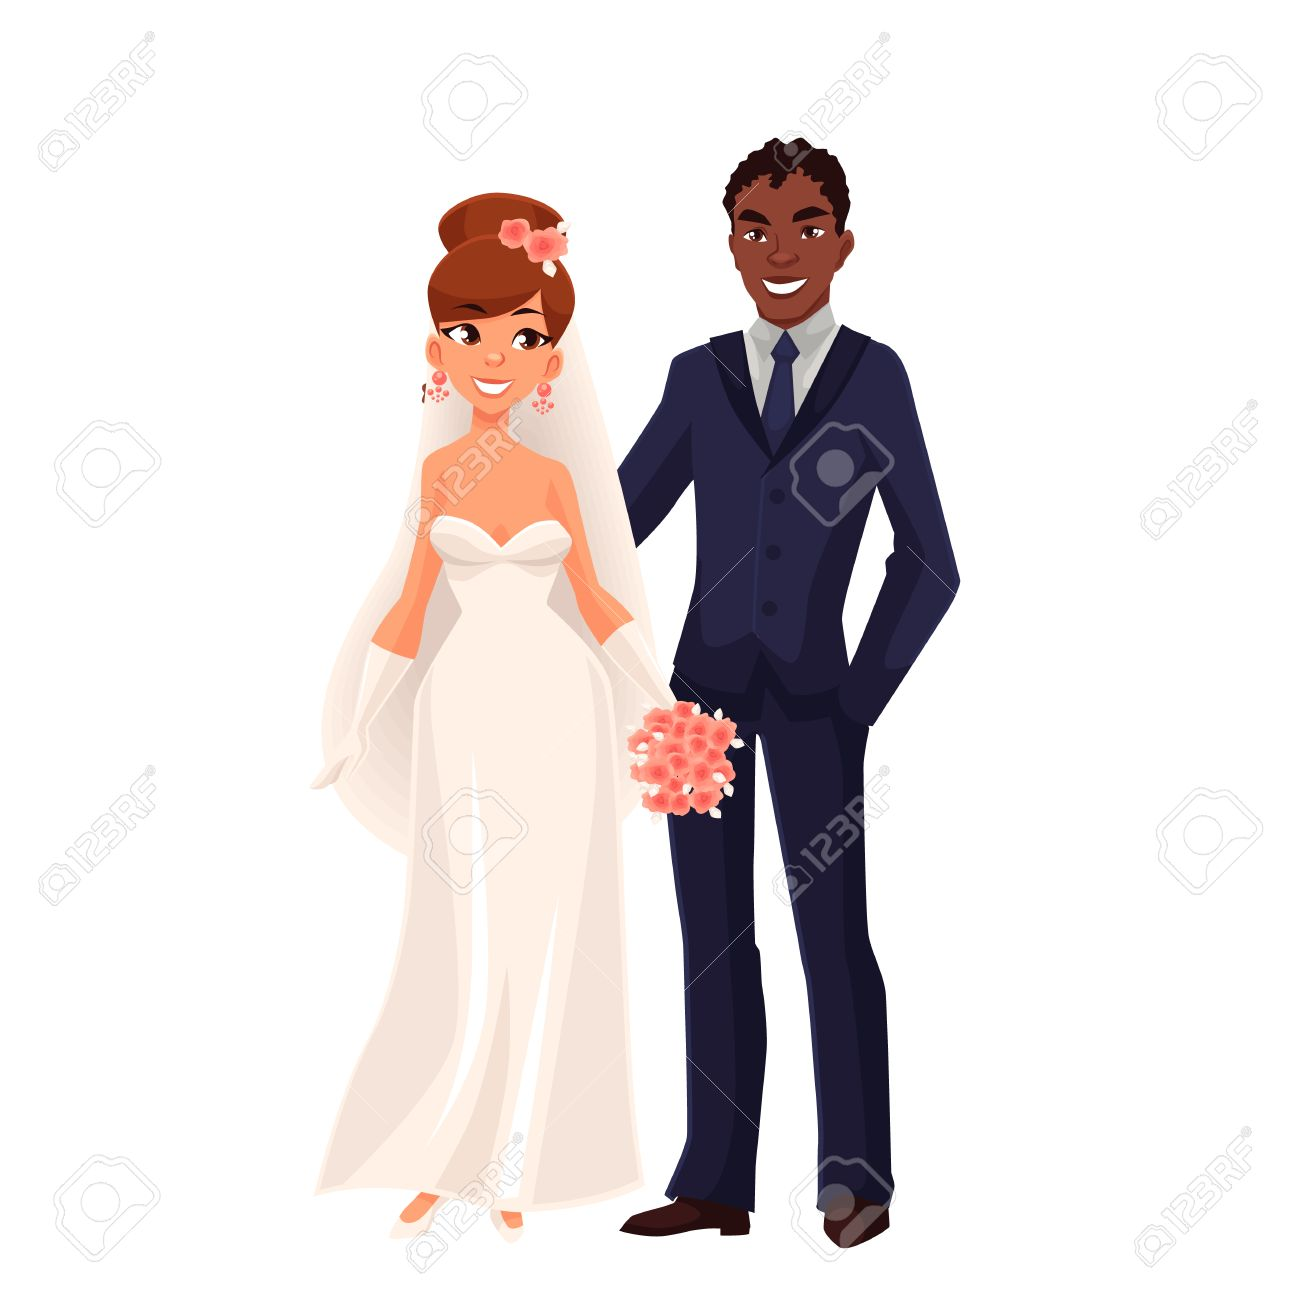 Caucasian bride and African groom, just married couple, cartoon vector illustration isolated on white background. White bride and black groom, mixed couple, wedding ceremony - 63578914